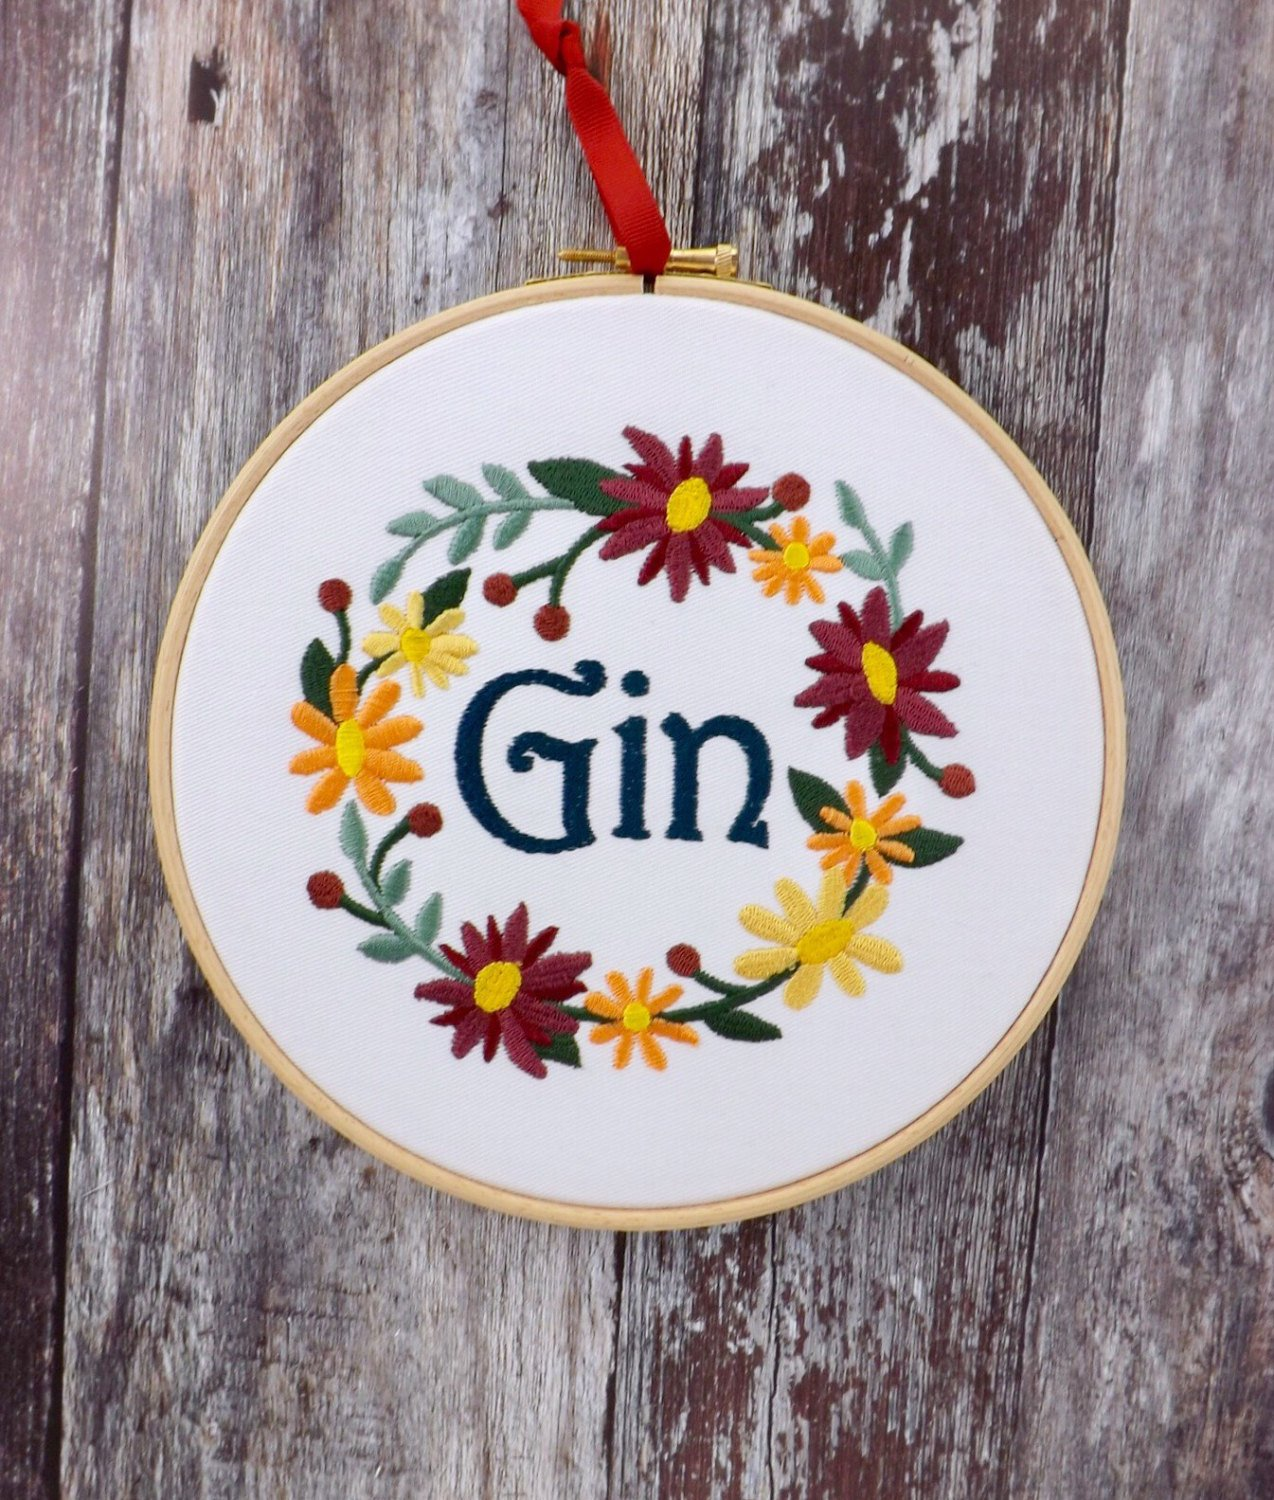 Gin, floral wreath, Embroidery hoop art